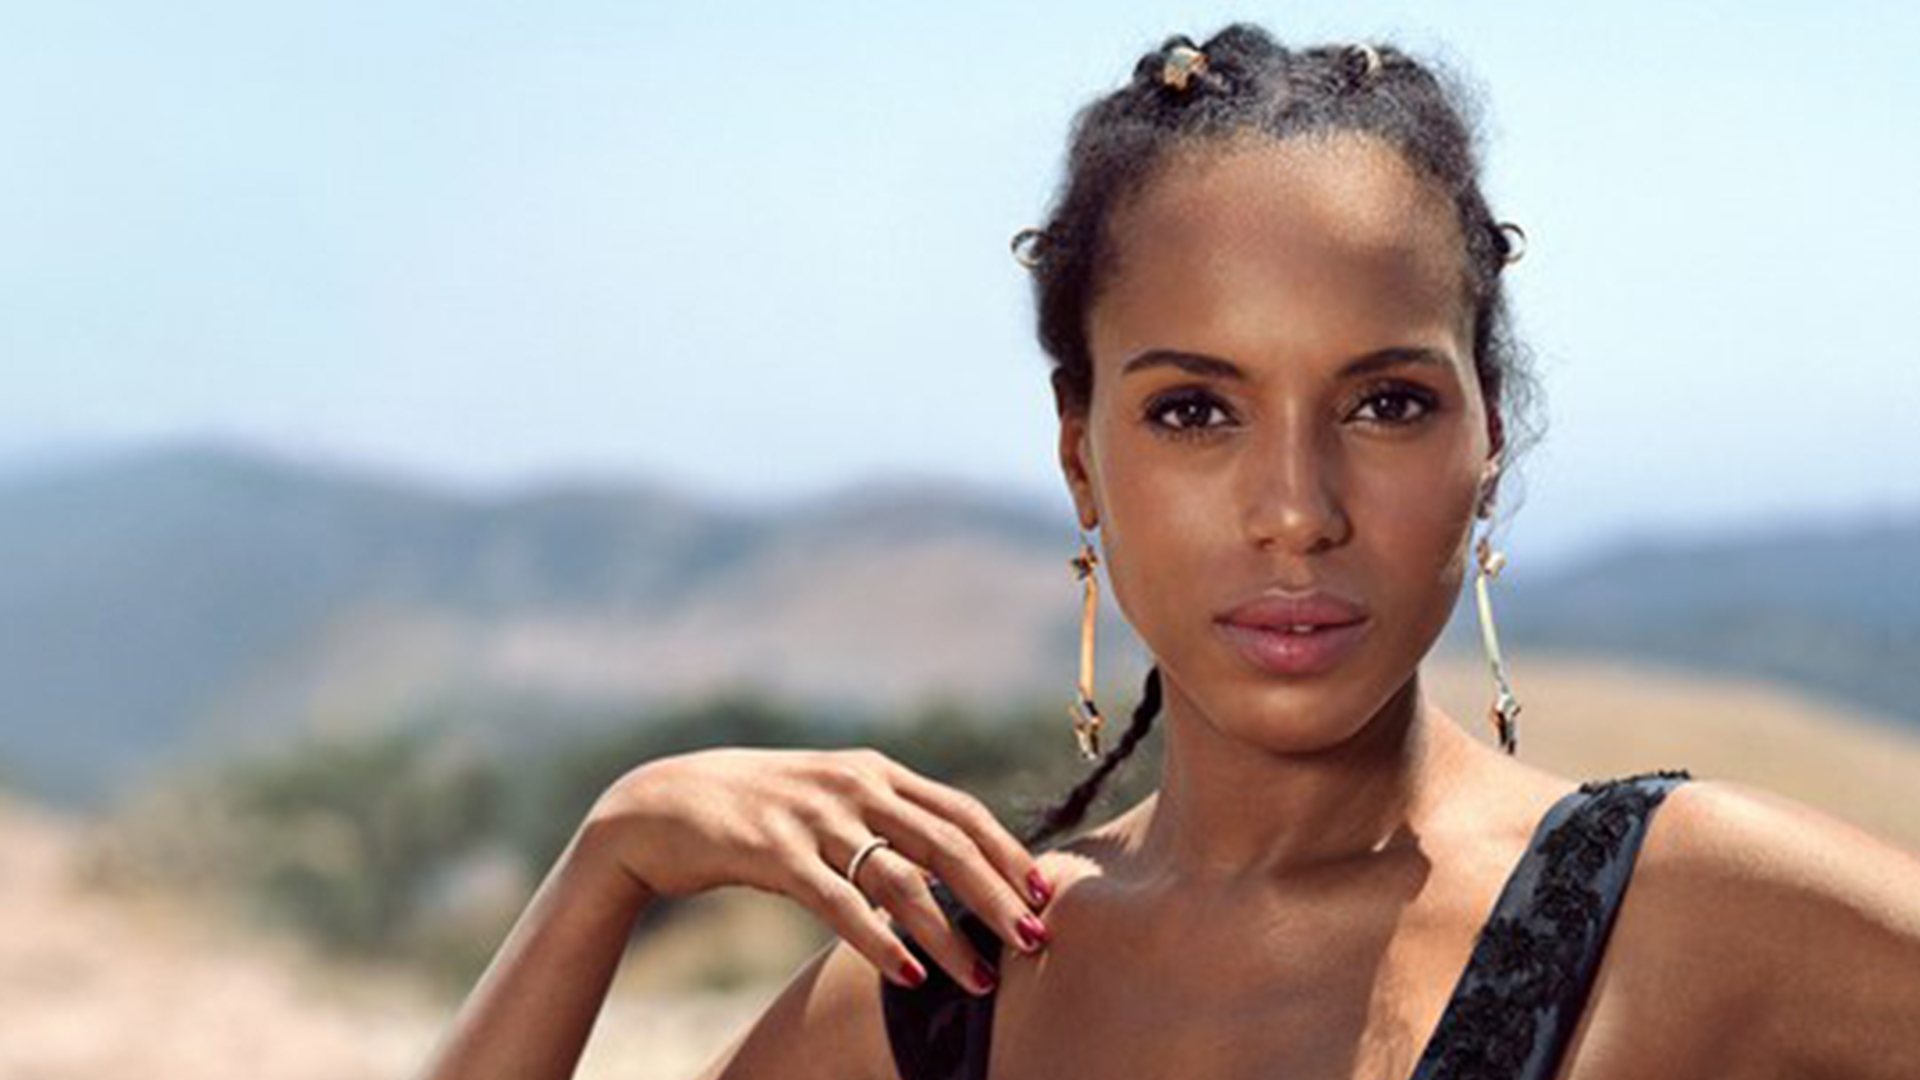 sexy-kerry-washington-cheveux-atttaches-afro-latino